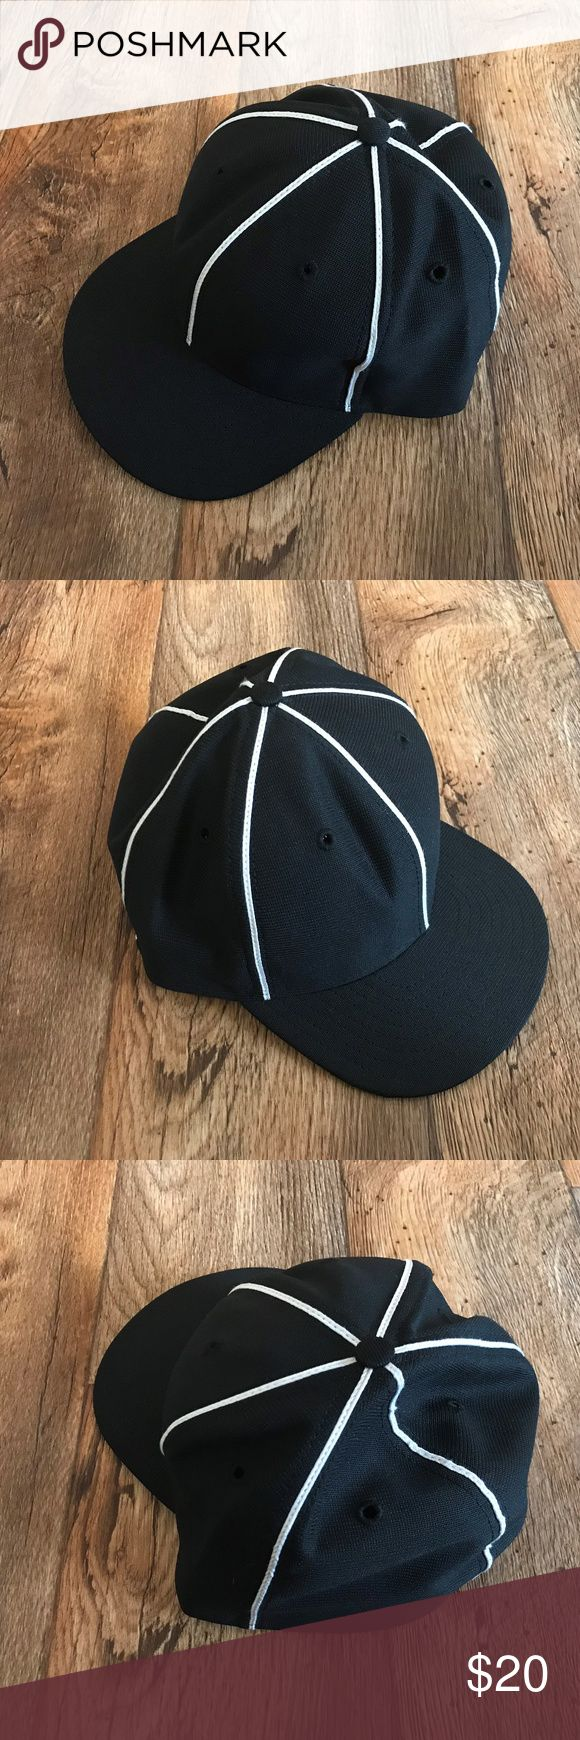 New Era Men Hat Cap Black Baseball Cap Original US New Era Mens Hat Cap Black Baseball Cap Original Made in USA Hats Size 7 3/8  Brand: New Era  Color: Black  Size: 7 3/8  Pre-owned: used and in good condition. New Era Accessories Hats